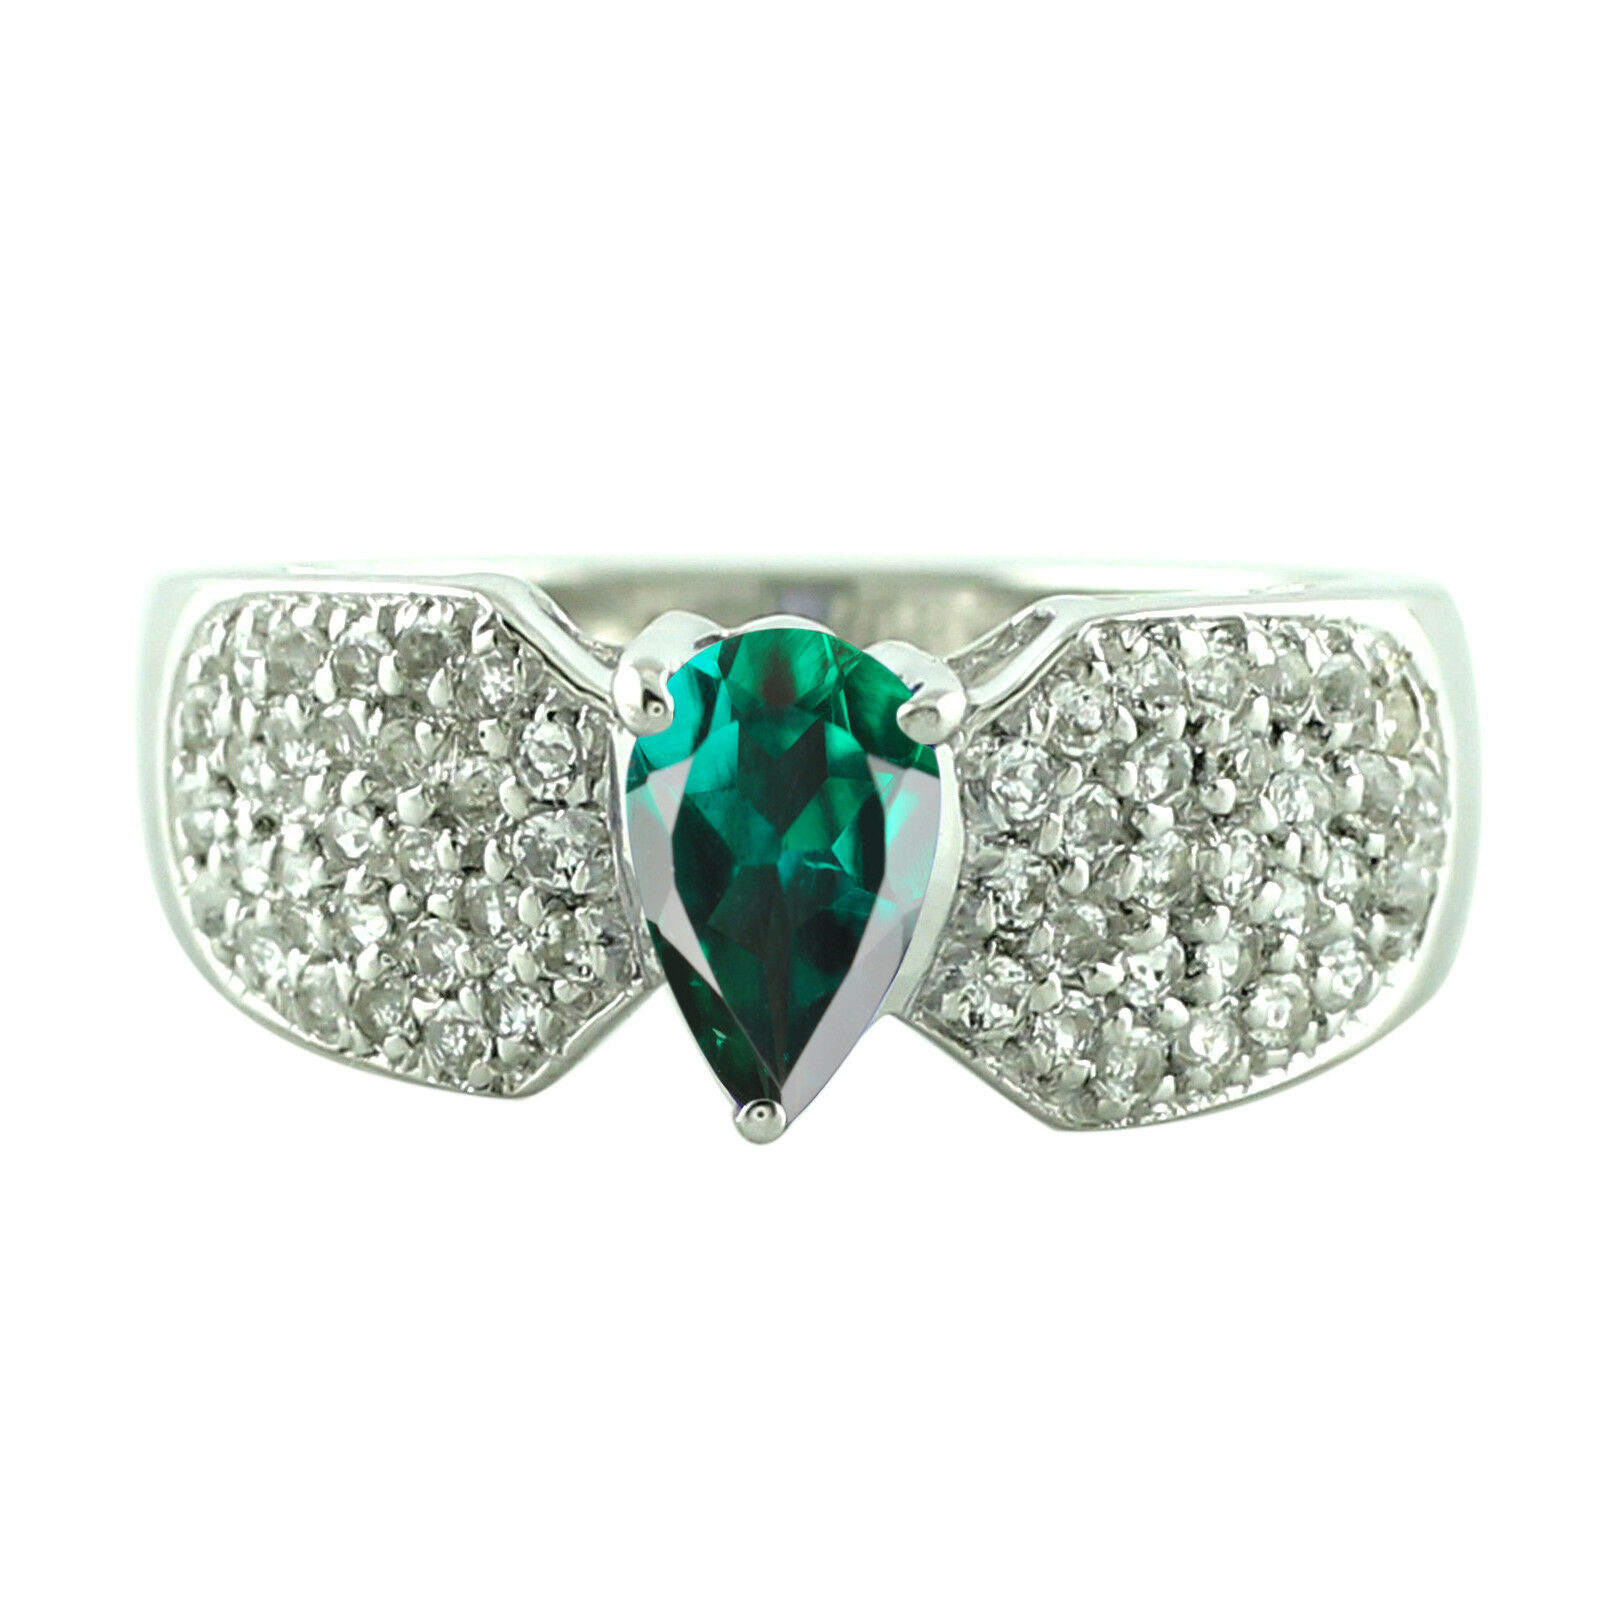 1.70Ct Natural Zambian Emerald  EGL Certified Diamond Ring In 14KT White gold